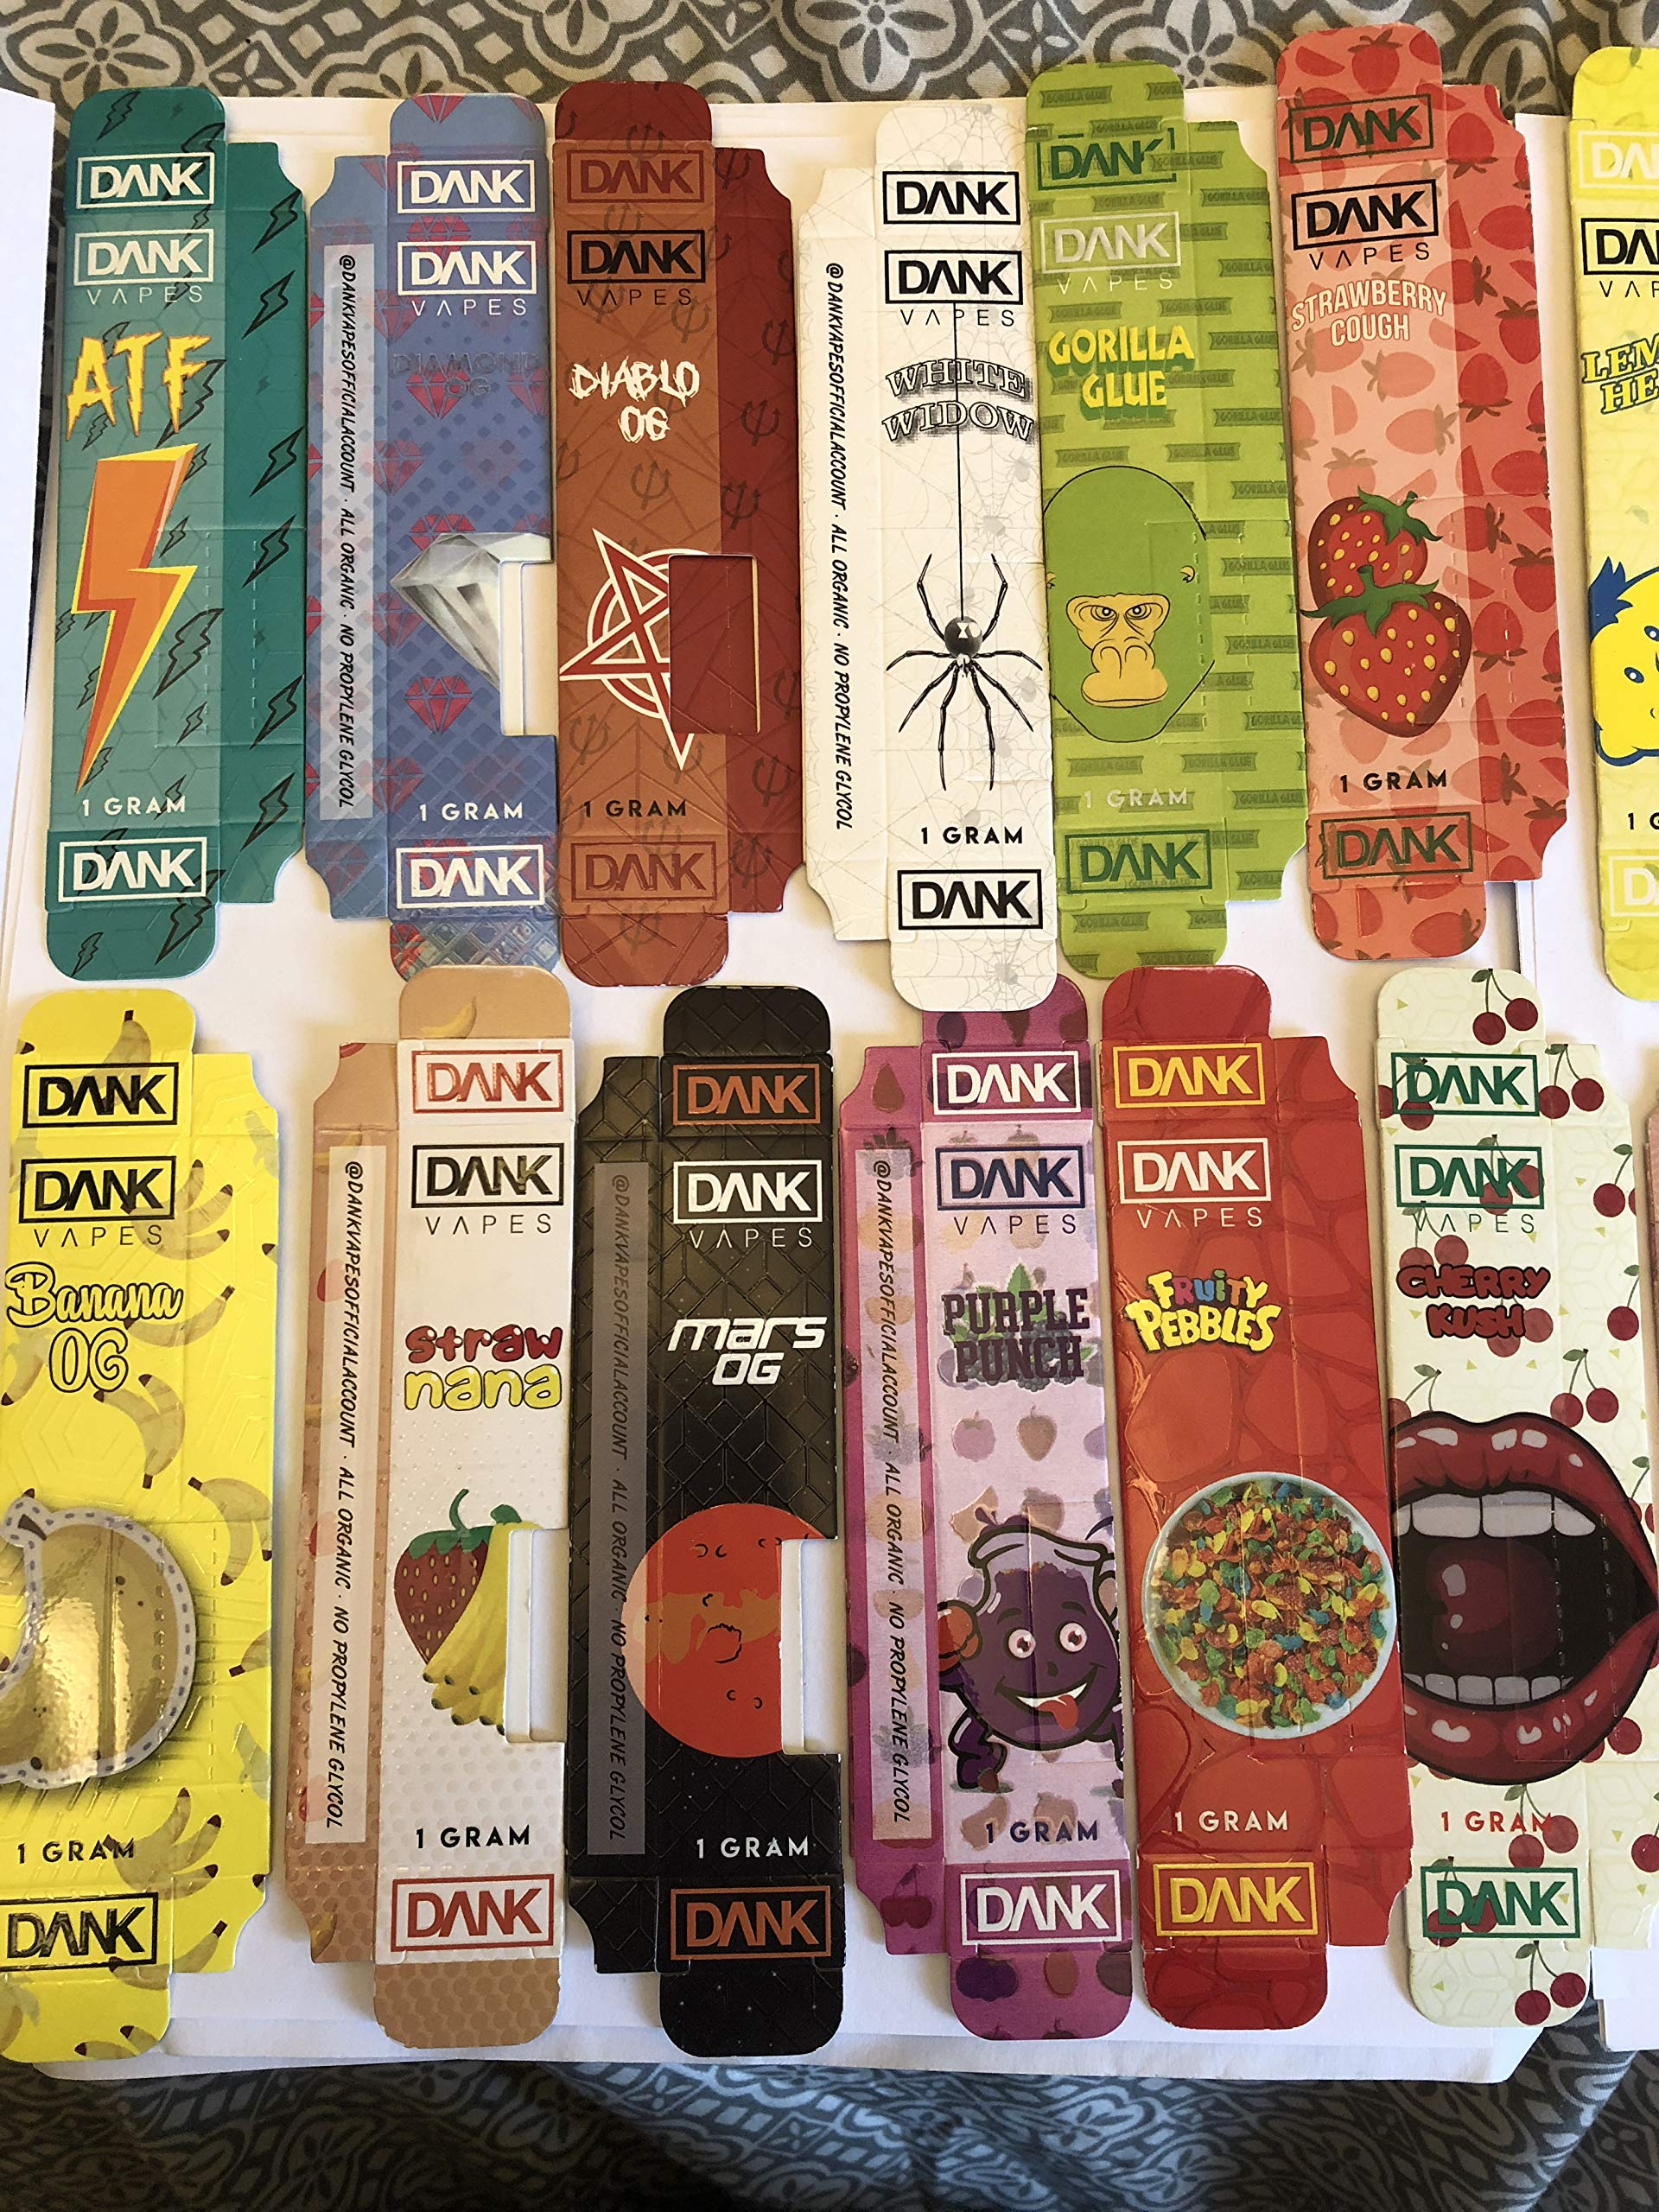 Dank Vape Packaging - 250pcs for $69.99 - EMPTY PACKAGING - 41 Flavors by CV Supplies (Image #3)